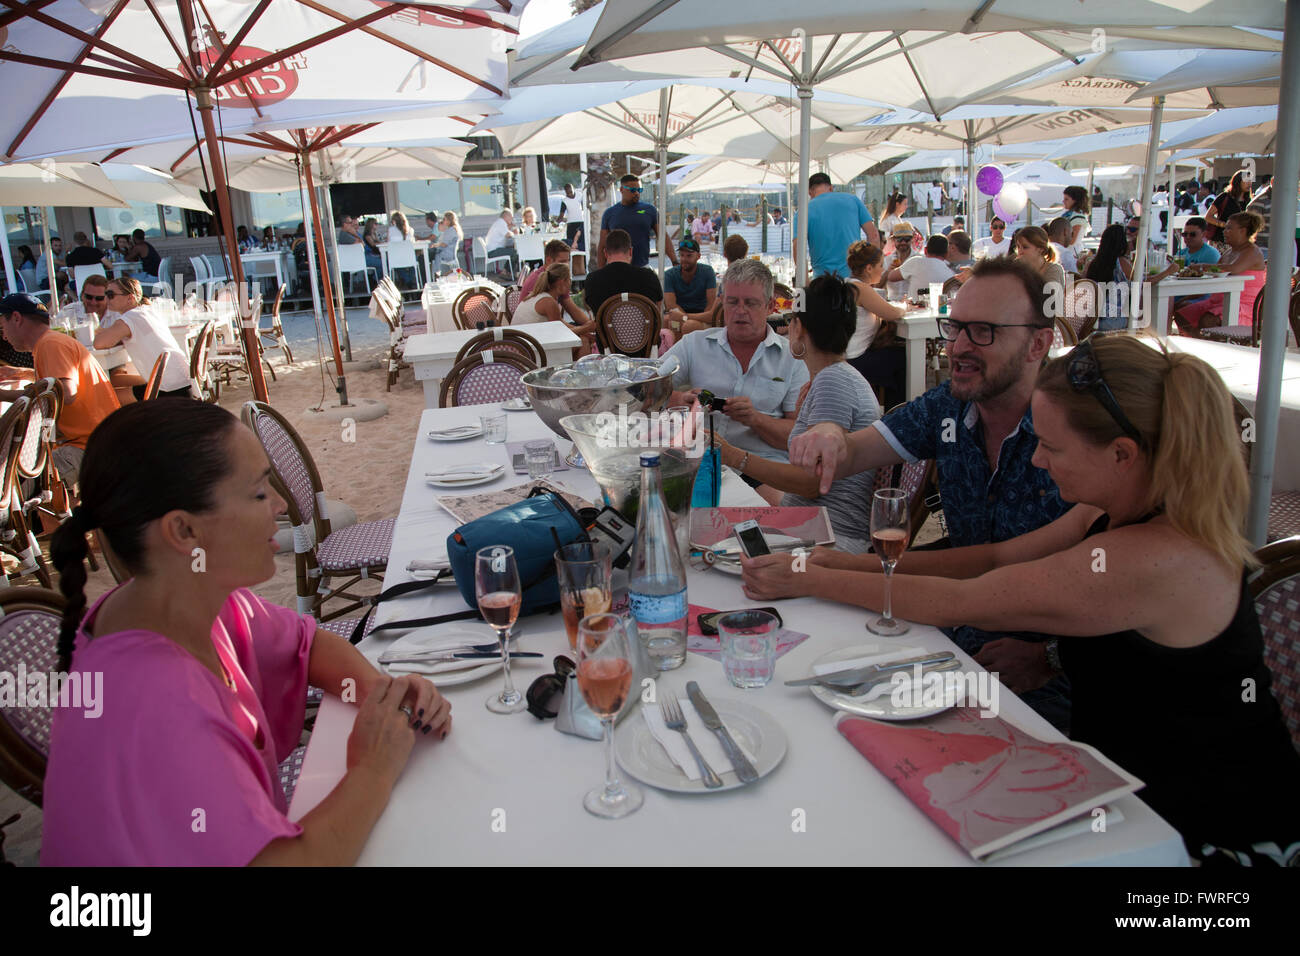 Grand Beach Cafe at Granger Bay in Cape Town - South Africa - Stock Image